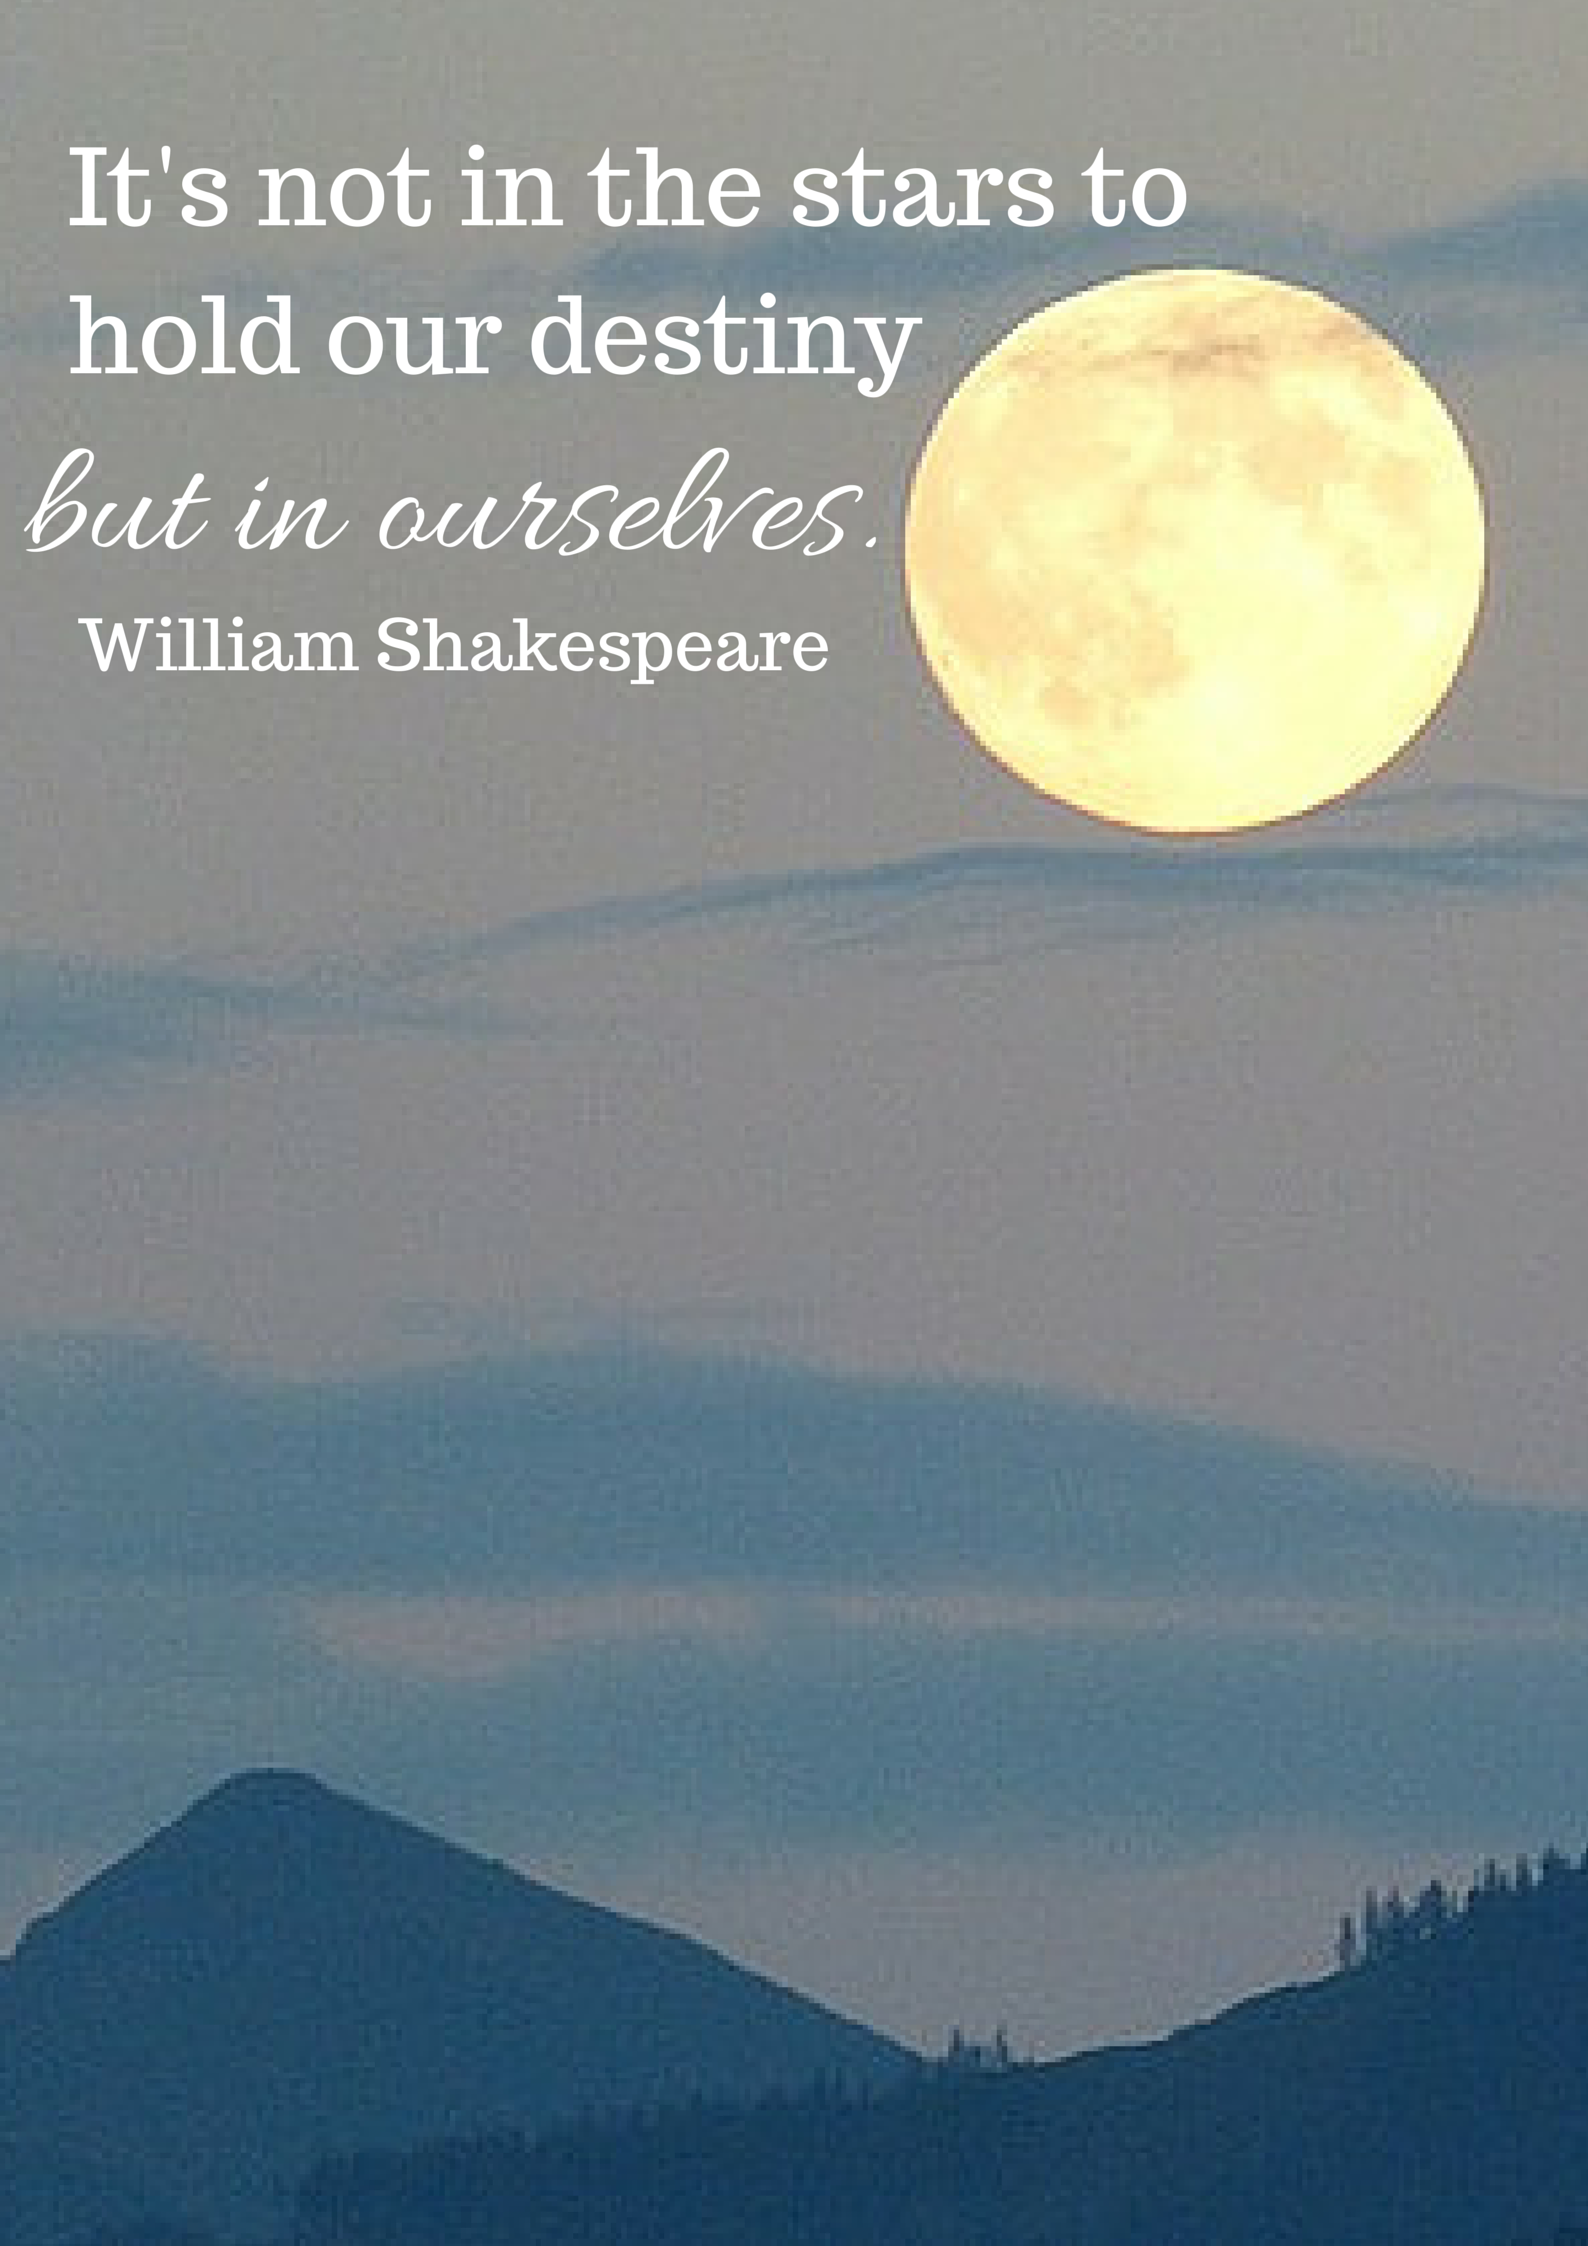 William Shakespeare Quotes About Friendship William Shakespeare Julius Caesar  Inspirational Quotes